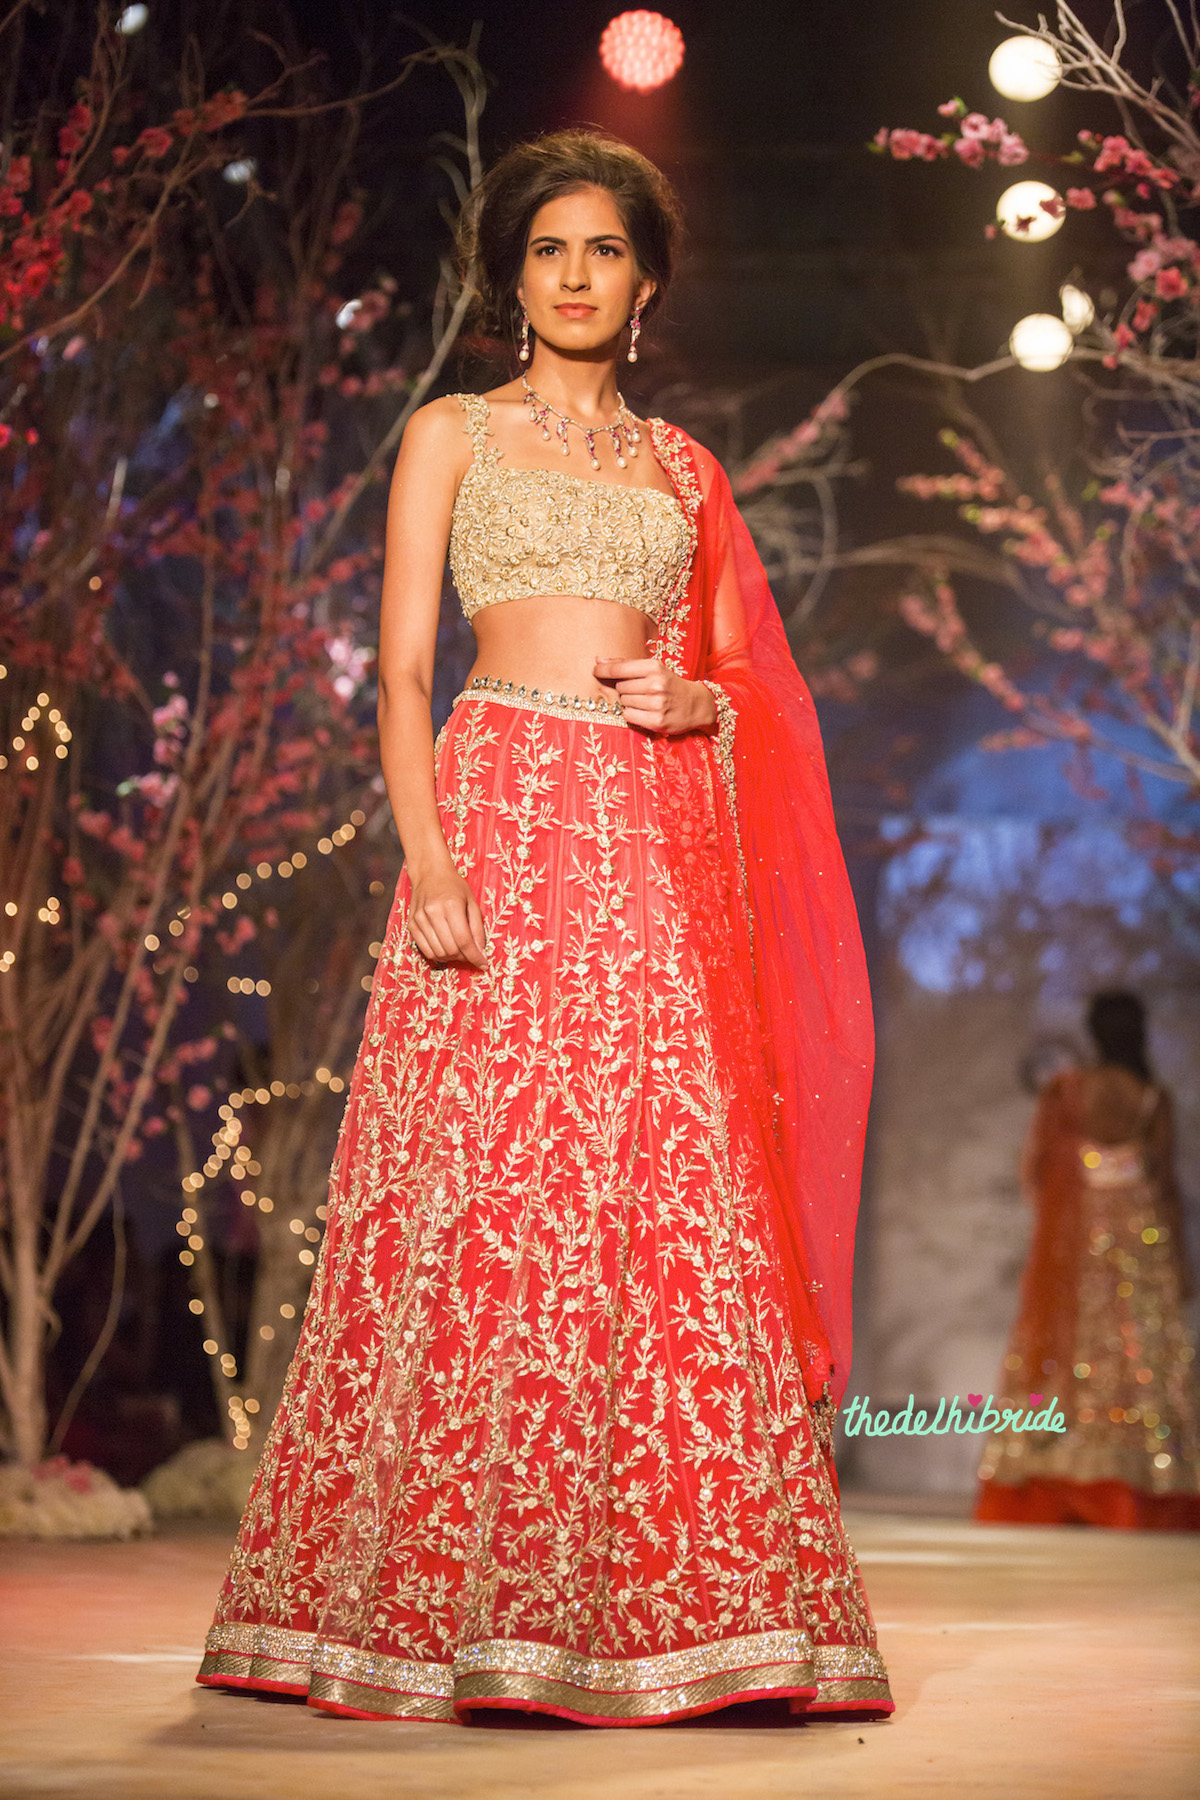 Jyotsna Tiwari At India Bridal Fashion Week 2014 An